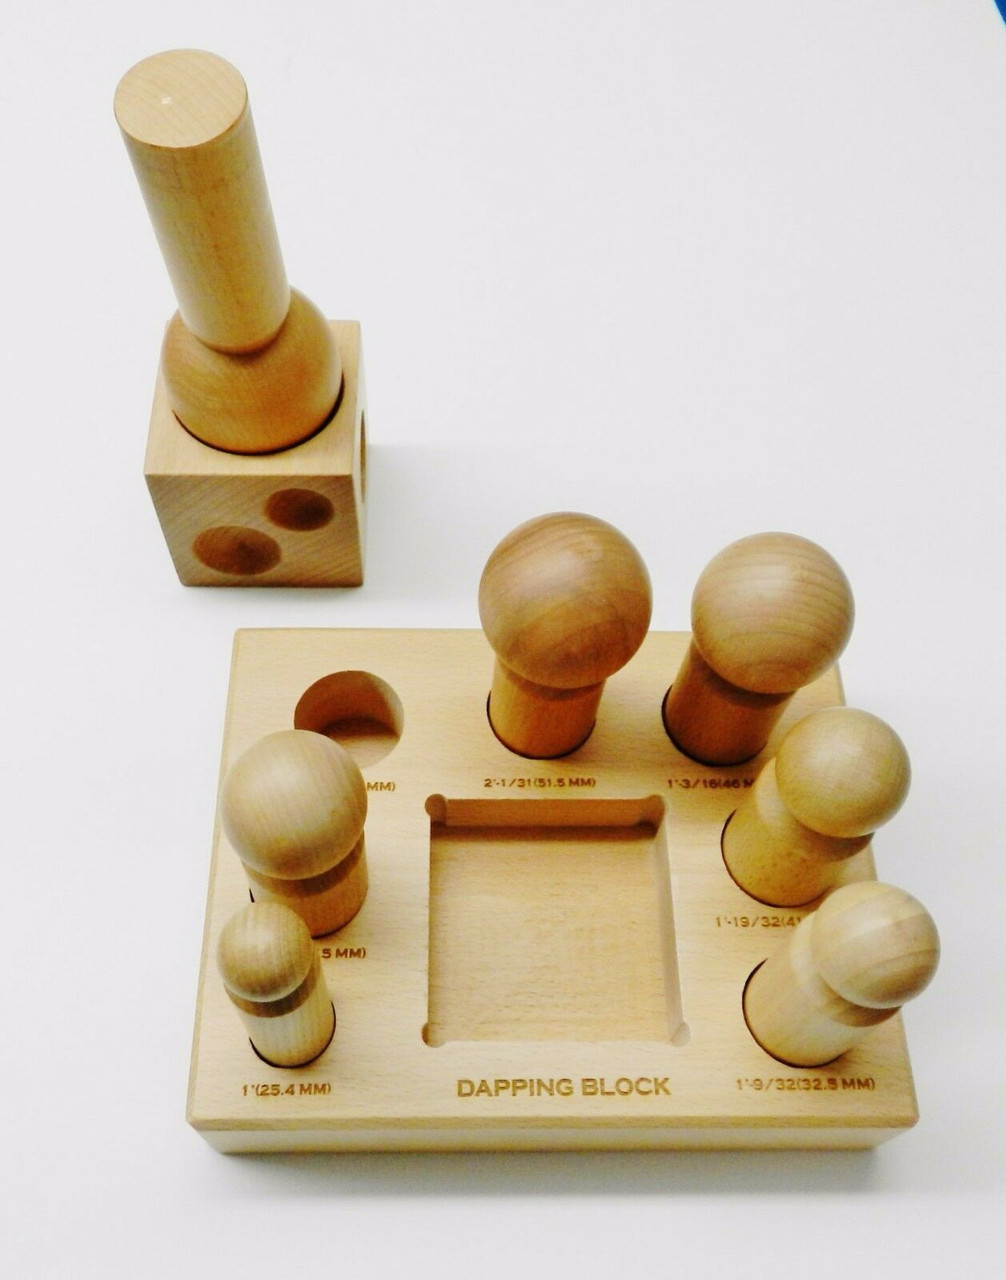 Wooden Dapping Block And Punches Set